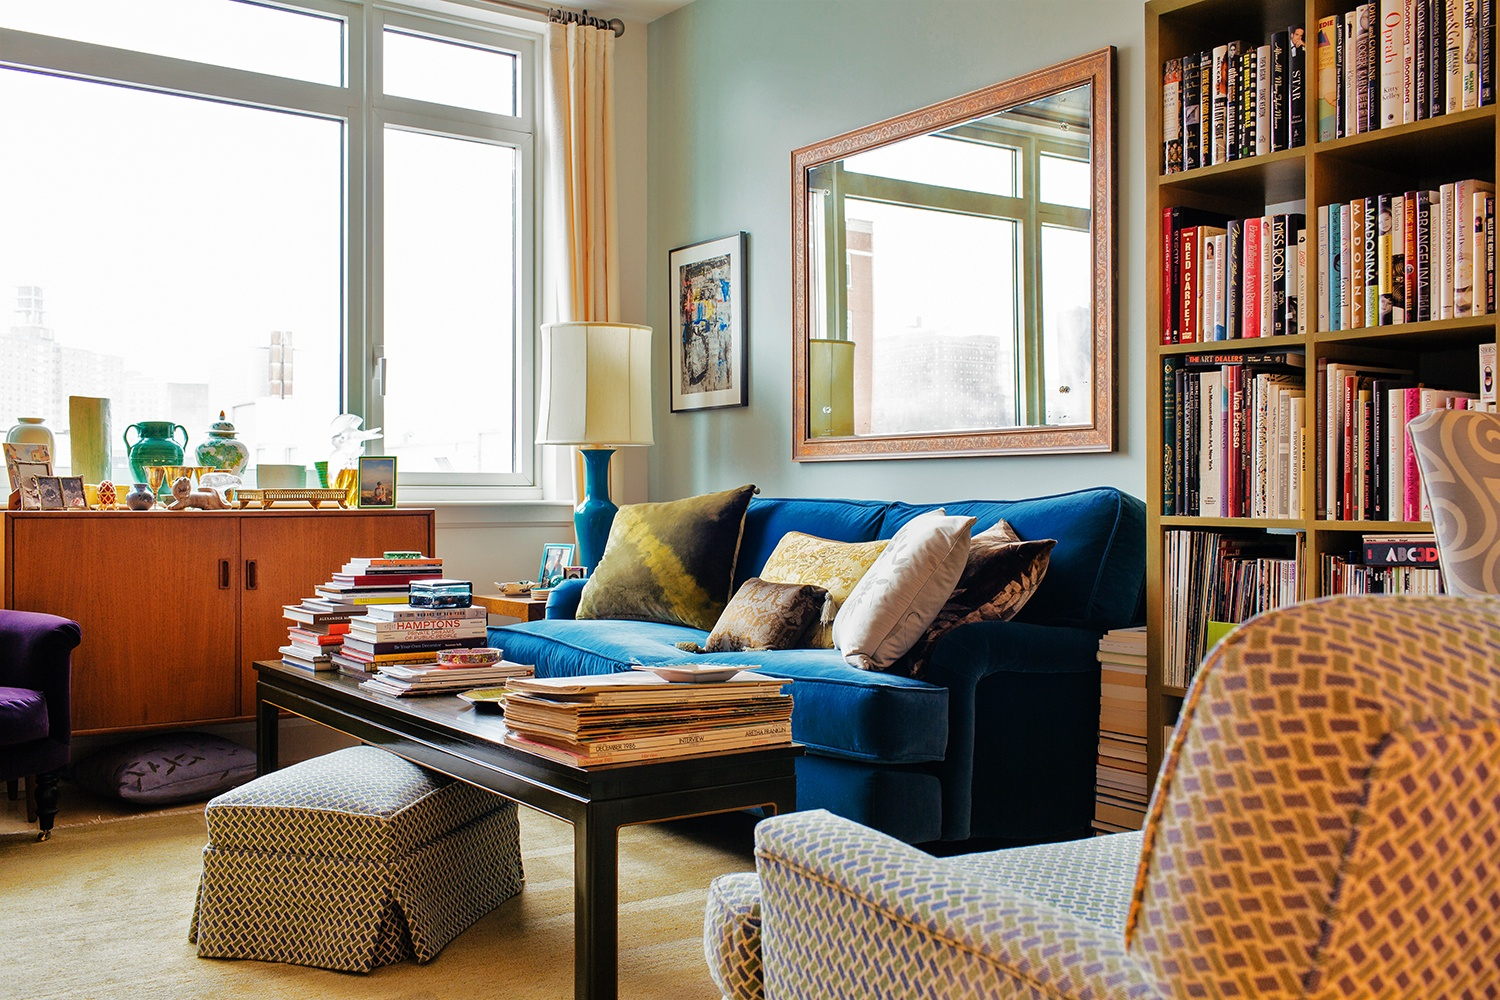 david kleinberg designs a warm and modern manhattan apartment manhattan designers ... the design of her new home, blending family heirlooms, eclectic and  colorful accessories and art, and plenty of personalityu2013all of which led  her to ...